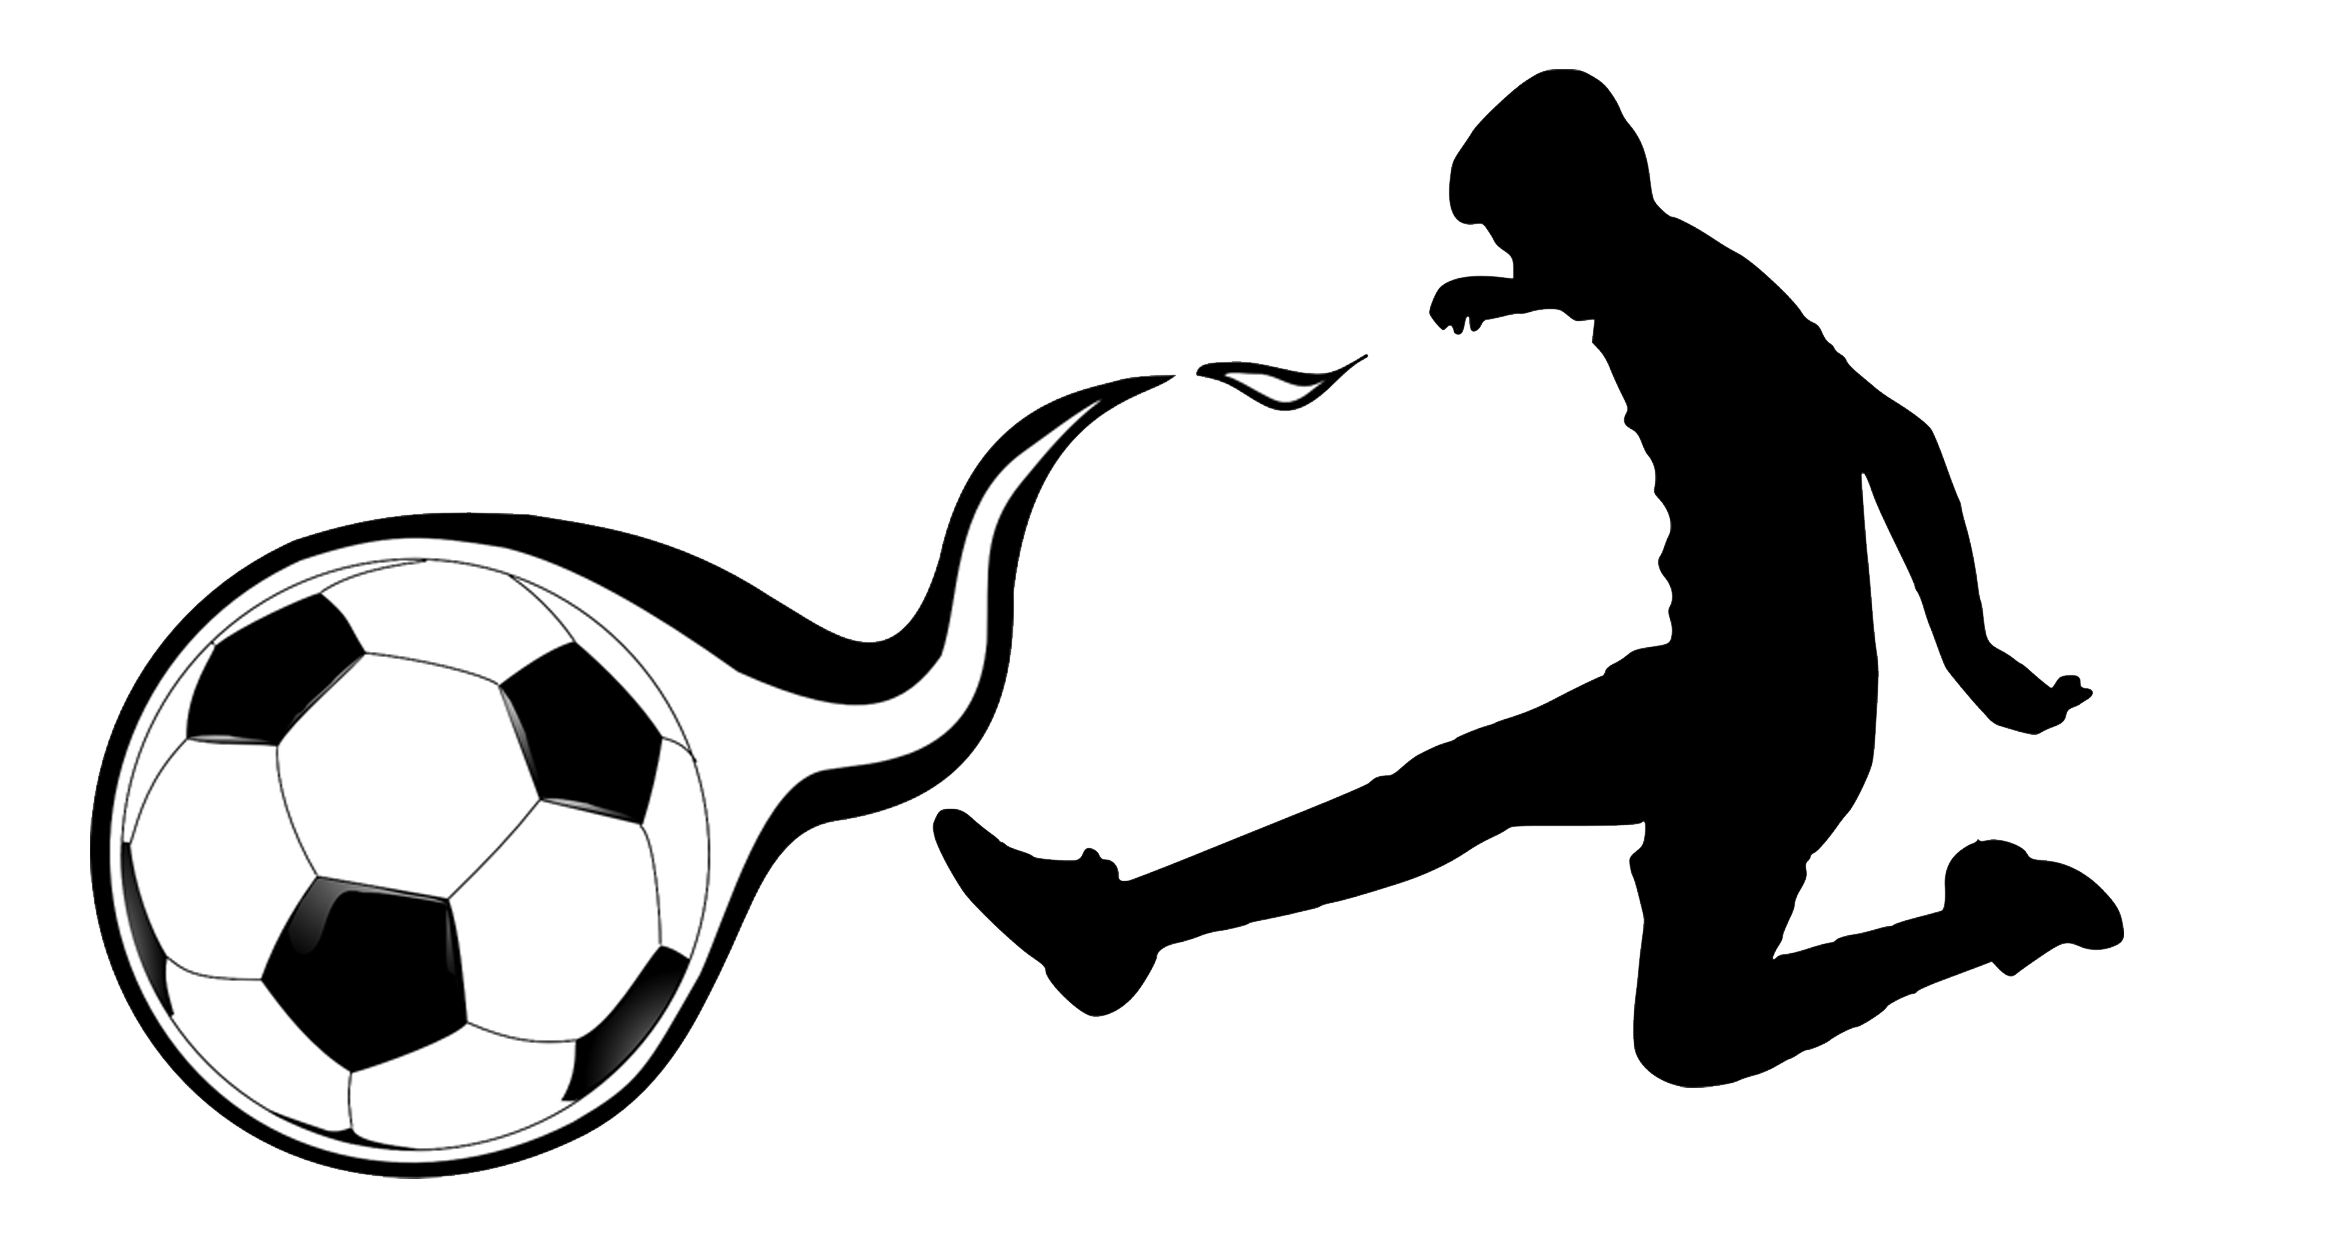 Decorative background image of player kicking soccer ball